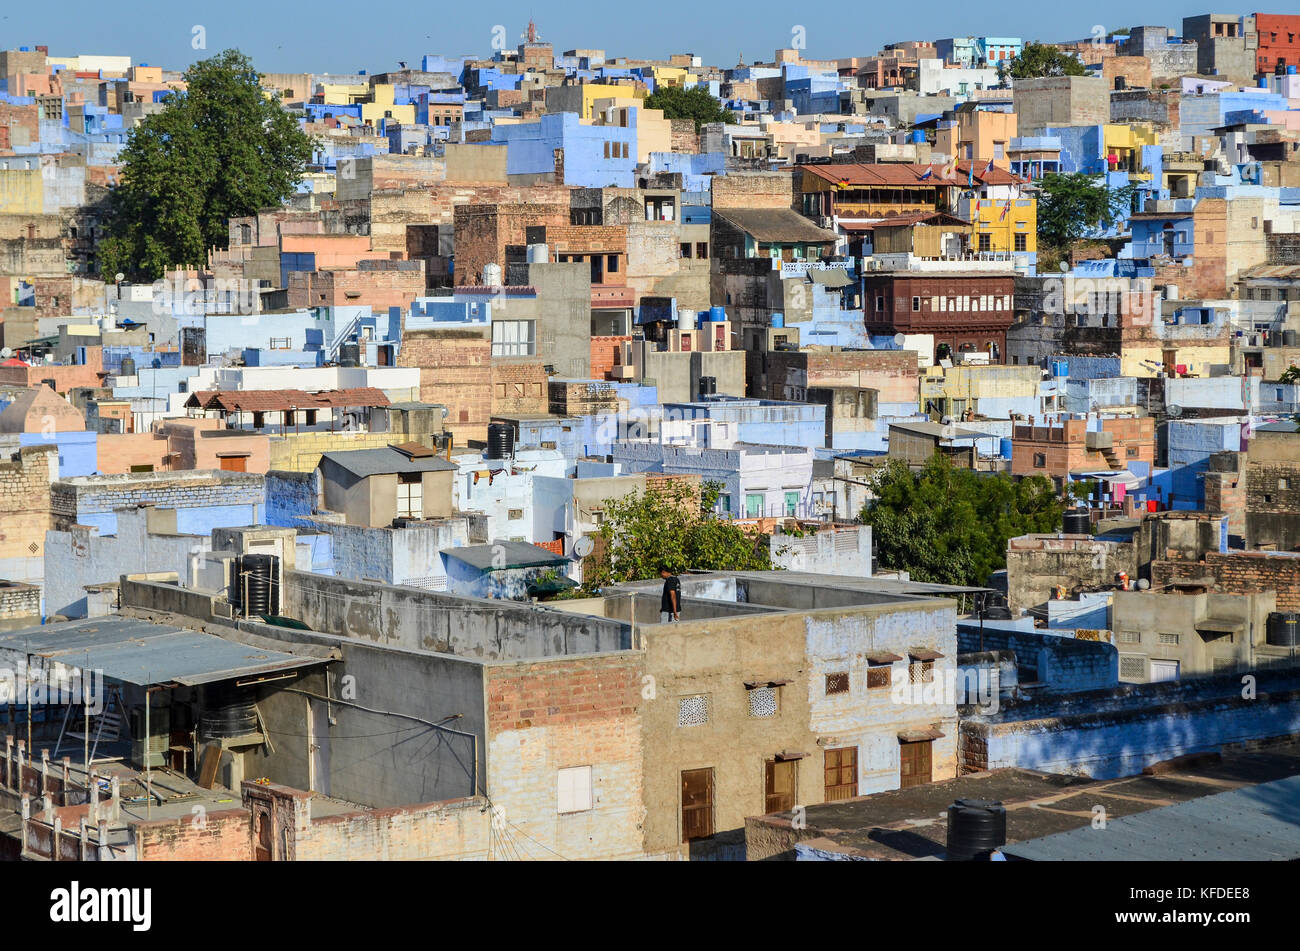 Cityscape of Jodphur with traditional indigo blue and white painted houses. Stock Photo